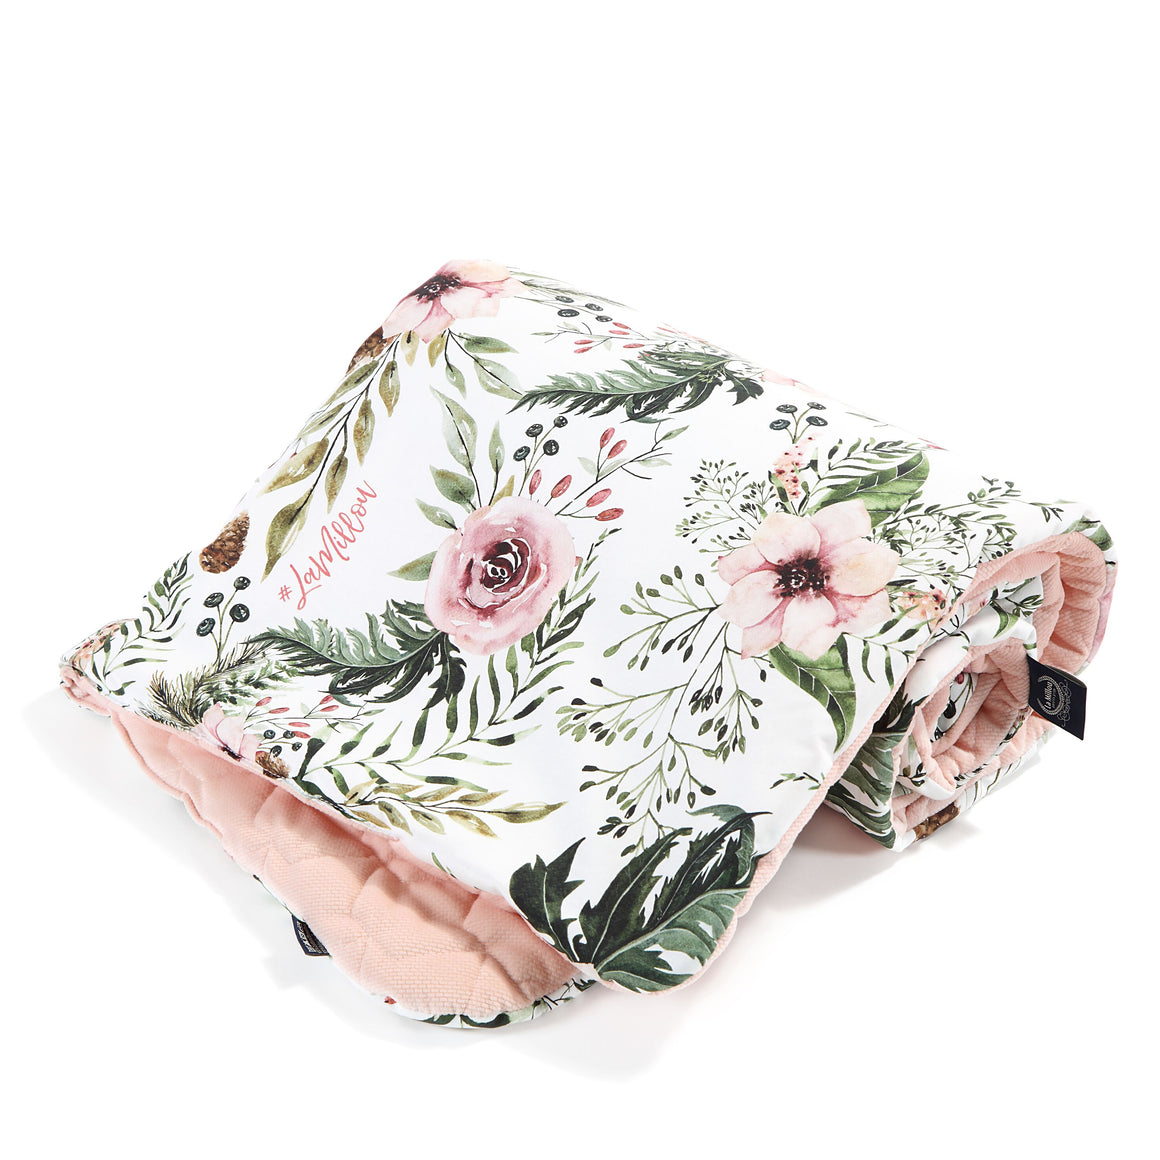 MEDIUM BLANKET - Wild Blossom | Velvet Powder Pink